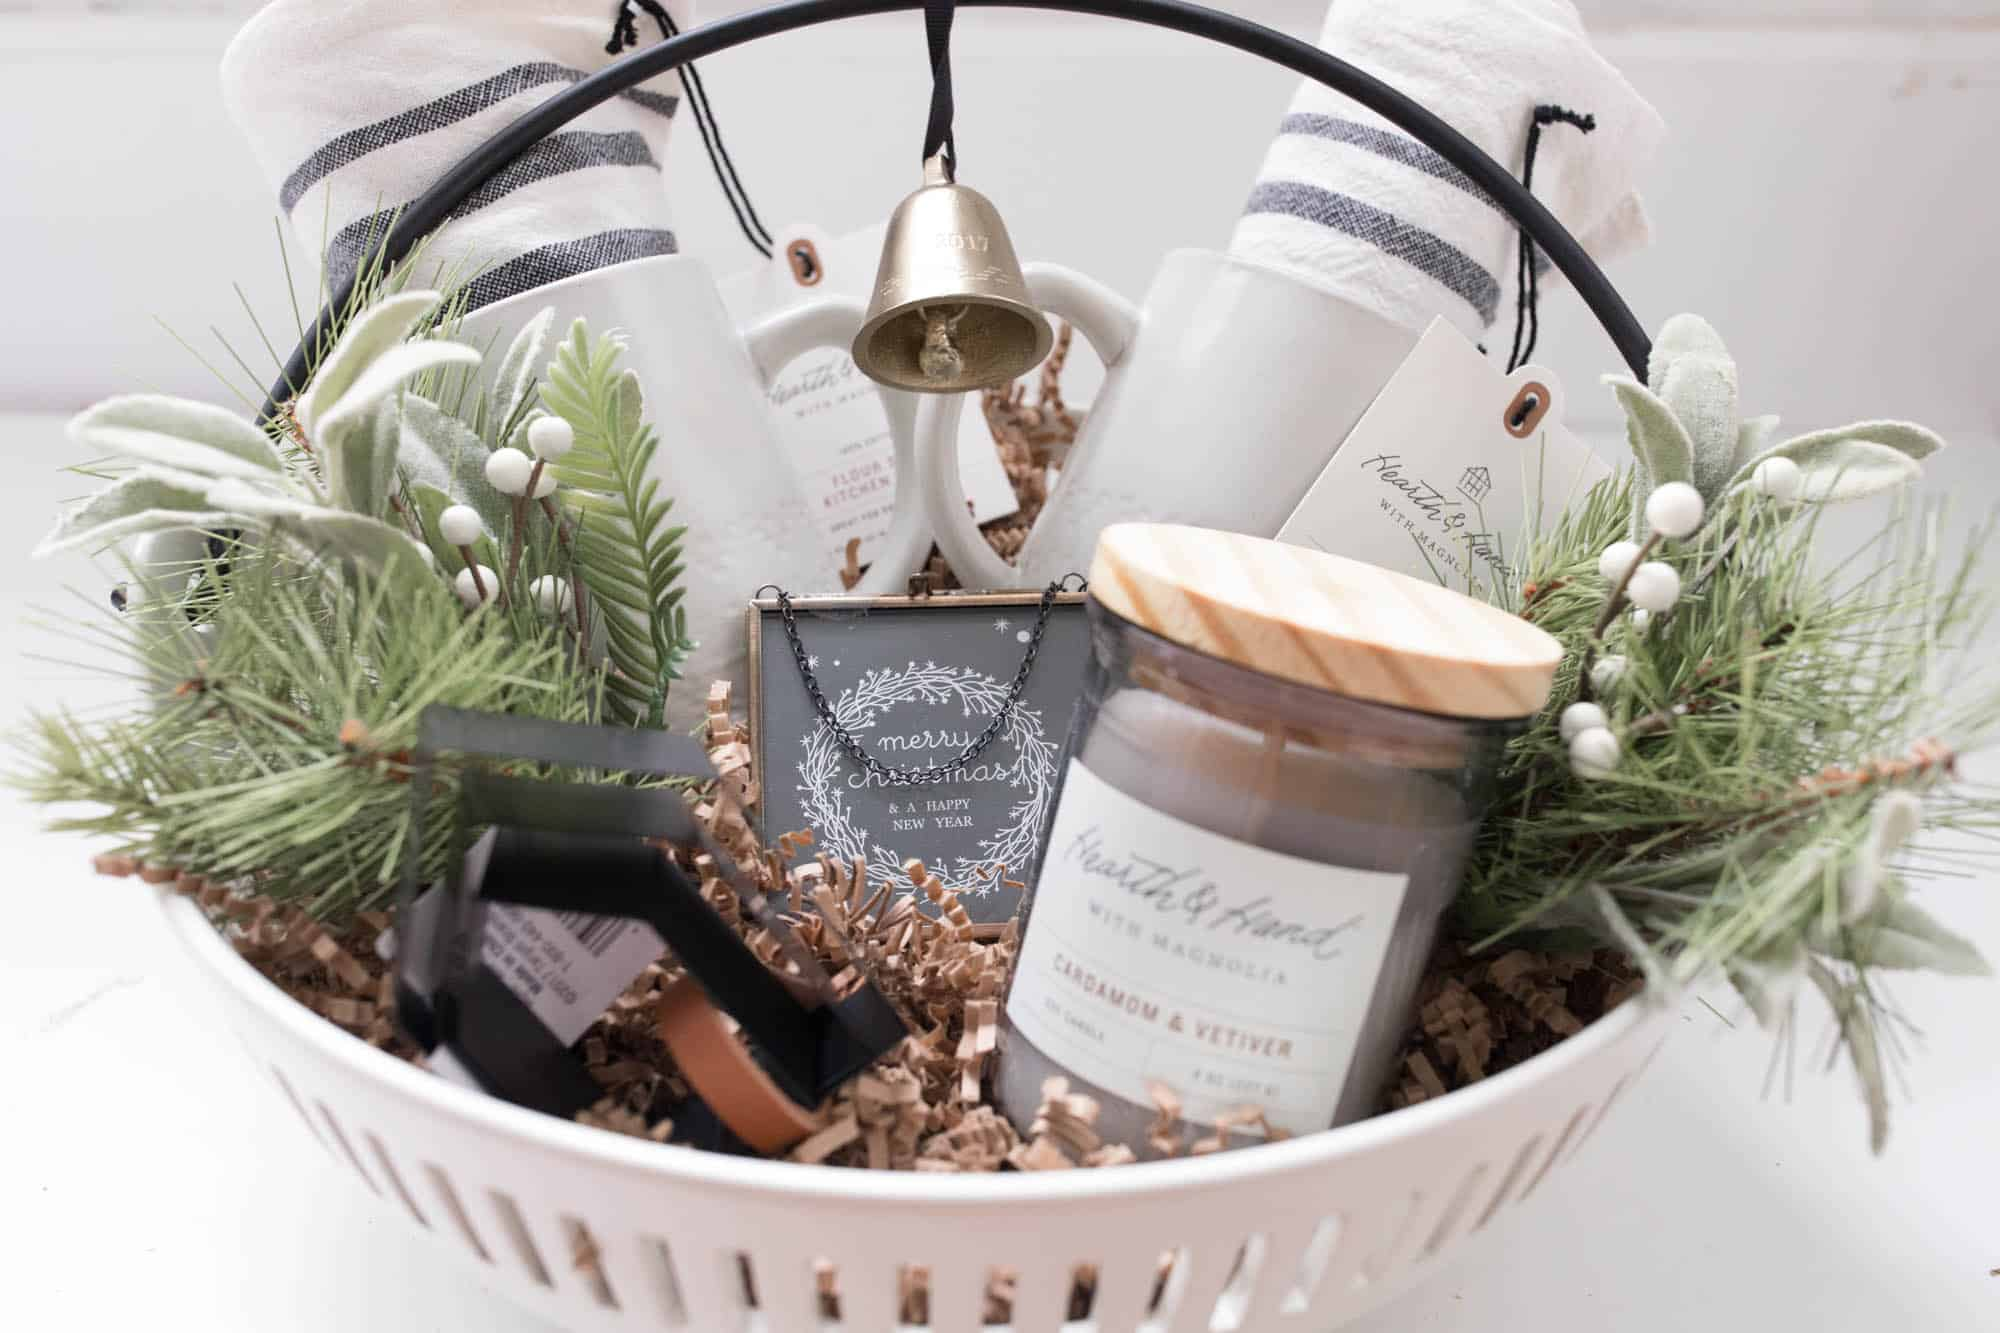 Hearth and hand gift basket gift guide for the farmhouse decor hearth and hand gift basket idea for the farmhouse decor lover on your list negle Images